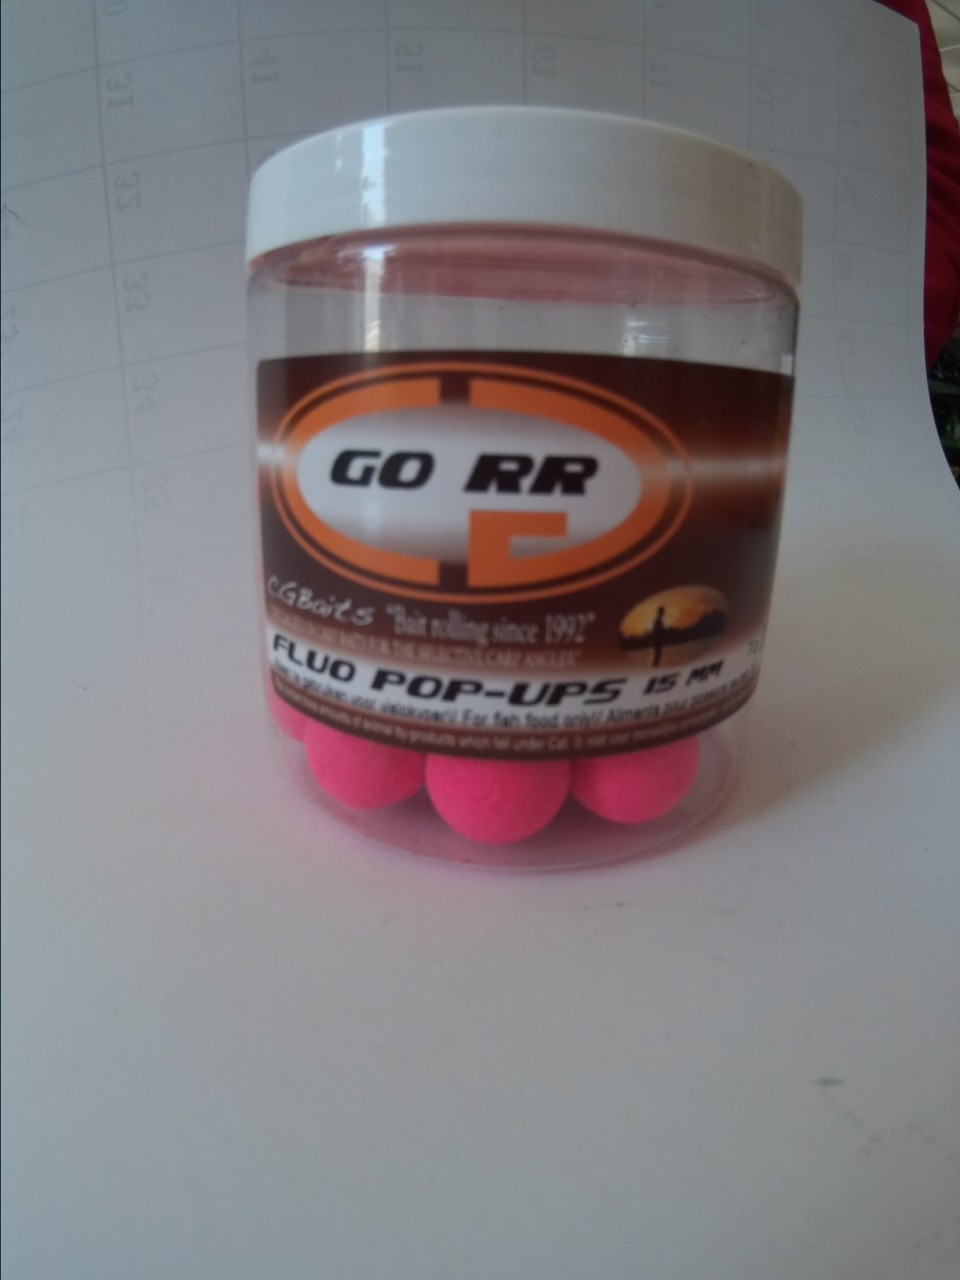 POP-UP GORR 15MM